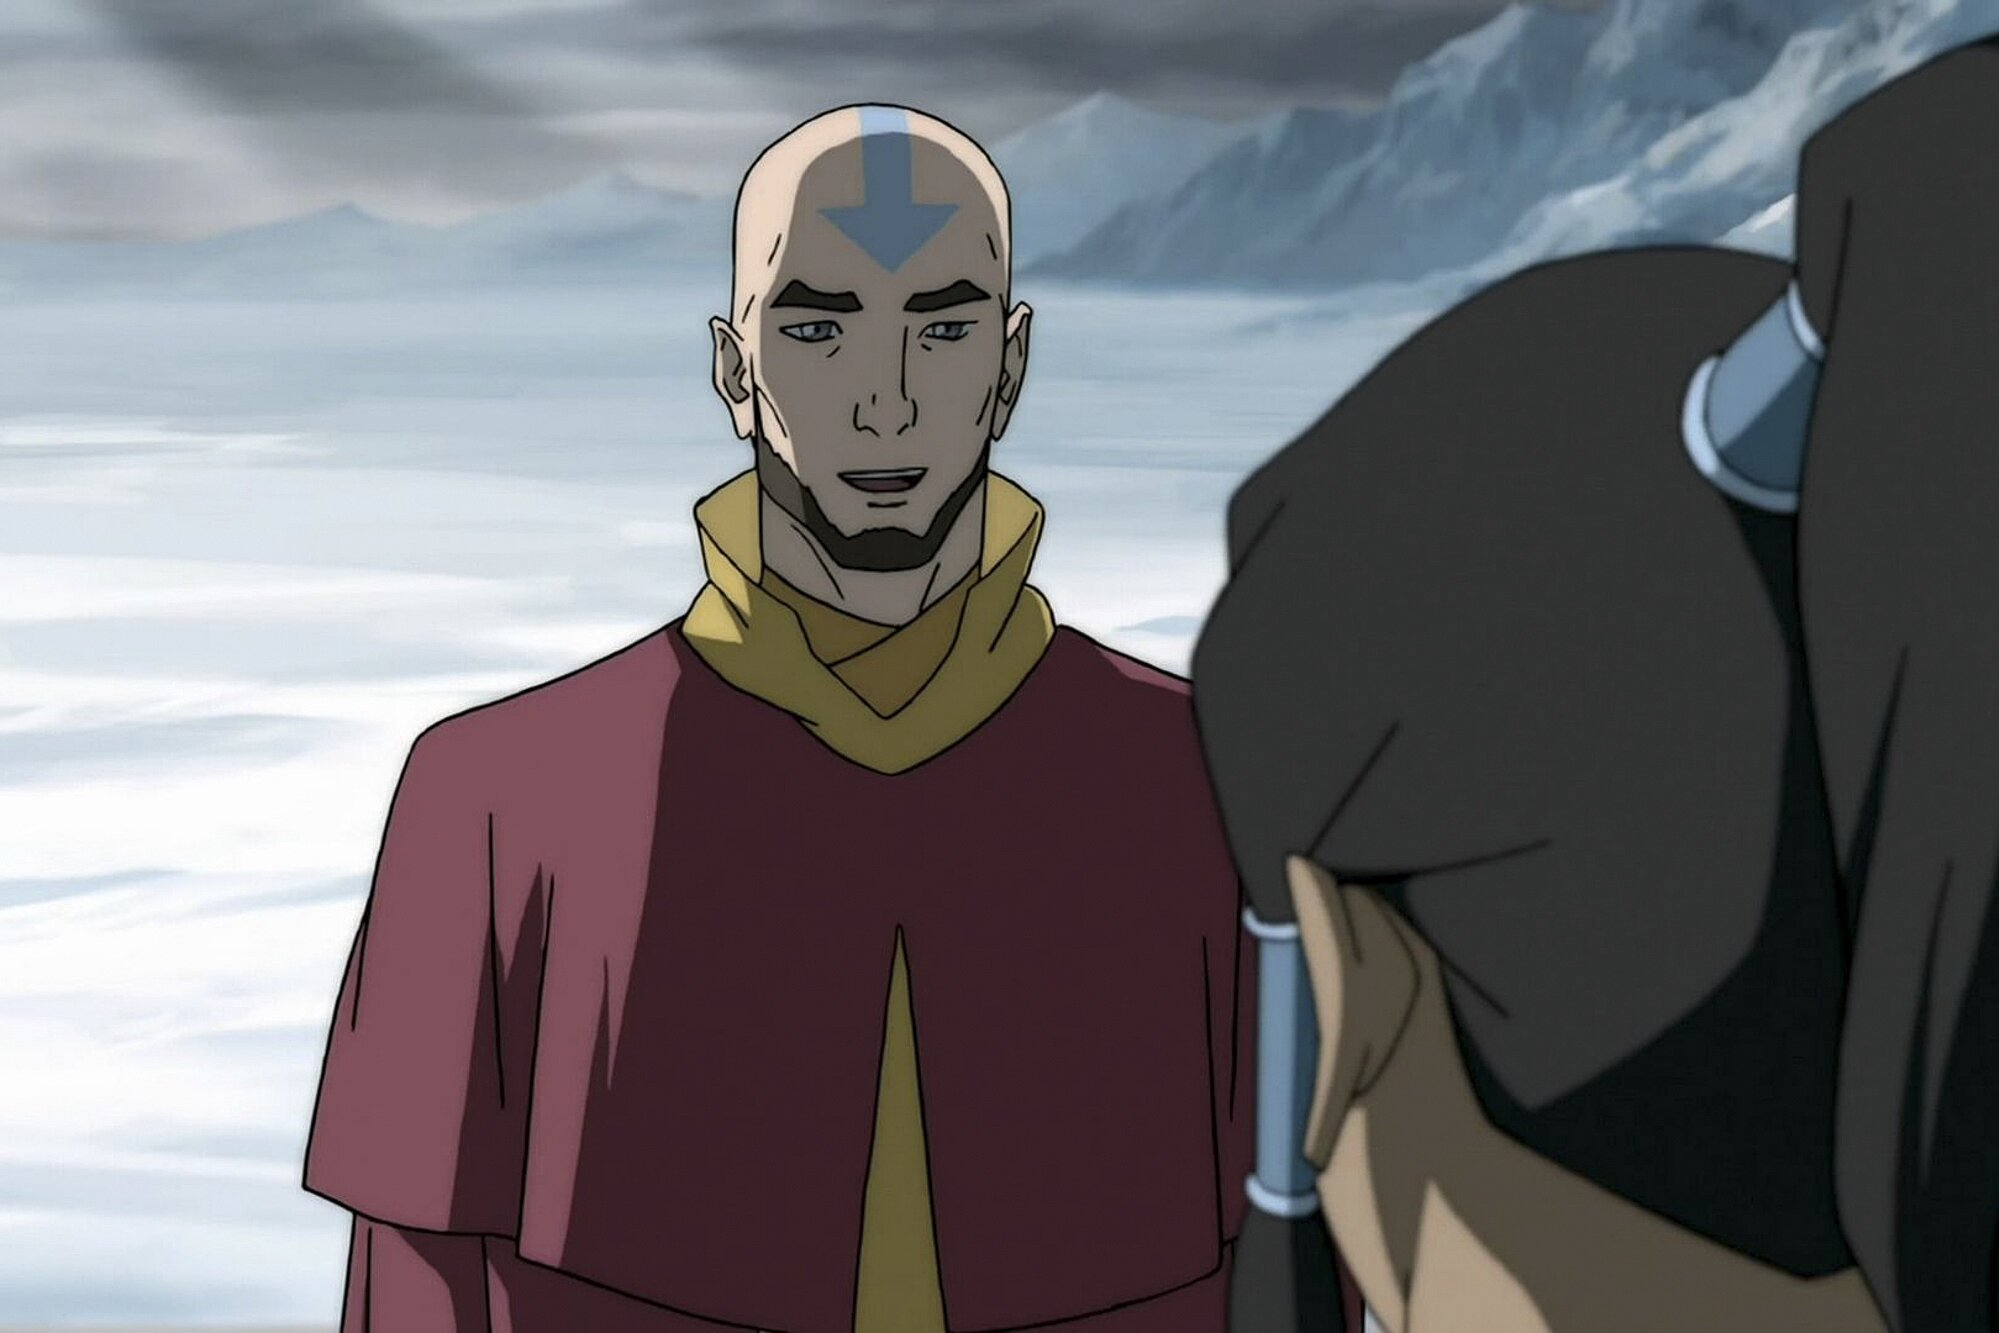 Avatar The Last Airbender Characters In The Legend Of Korra Ew Com